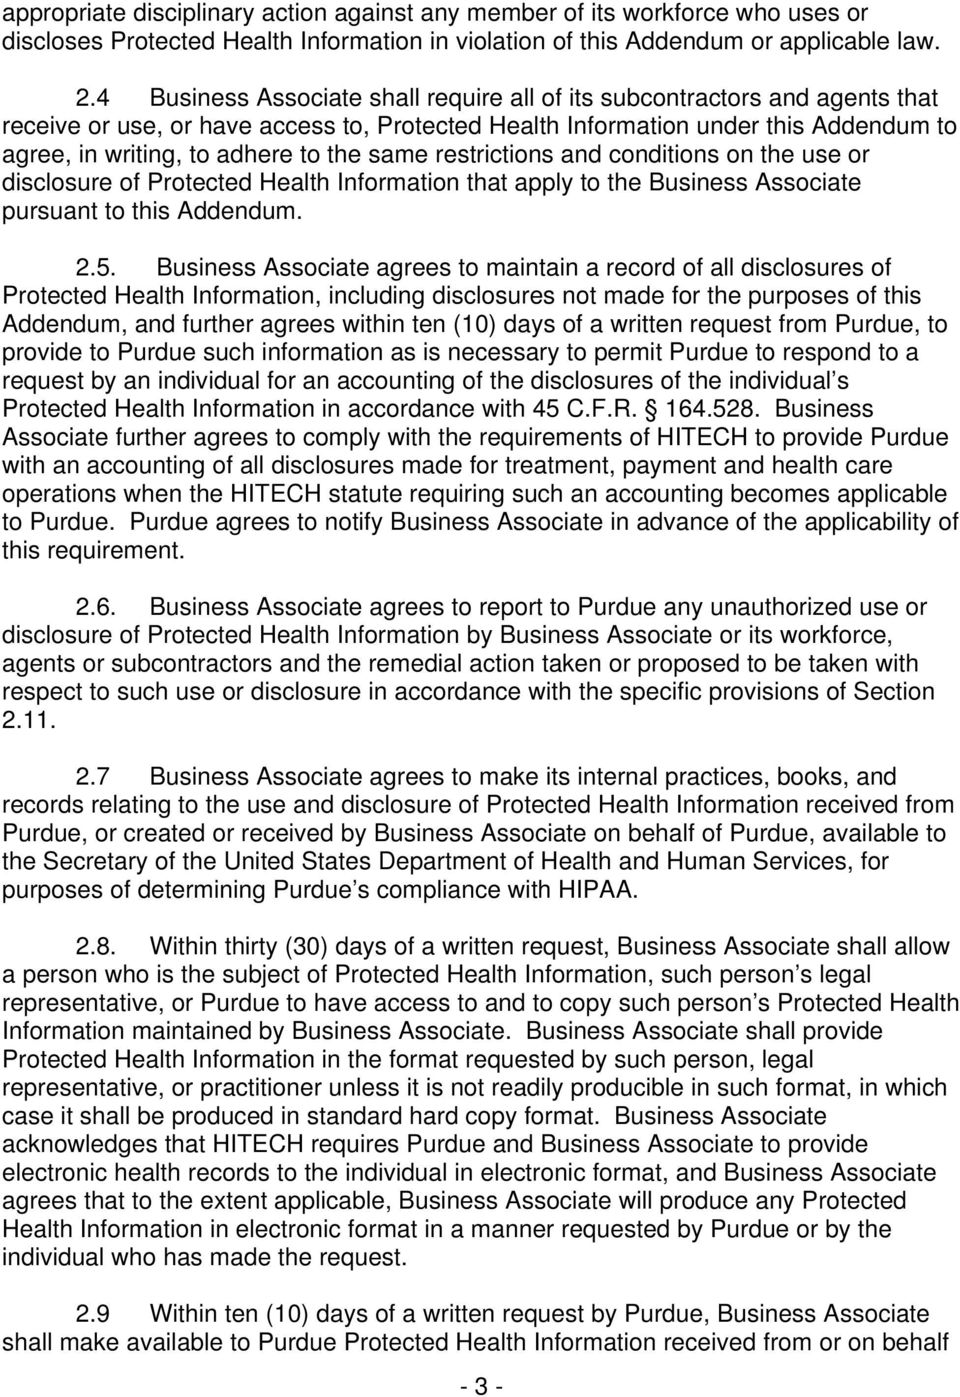 same restrictions and conditions on the use or disclosure of Protected Health Information that apply to the Business Associate pursuant to this Addendum. 2.5.